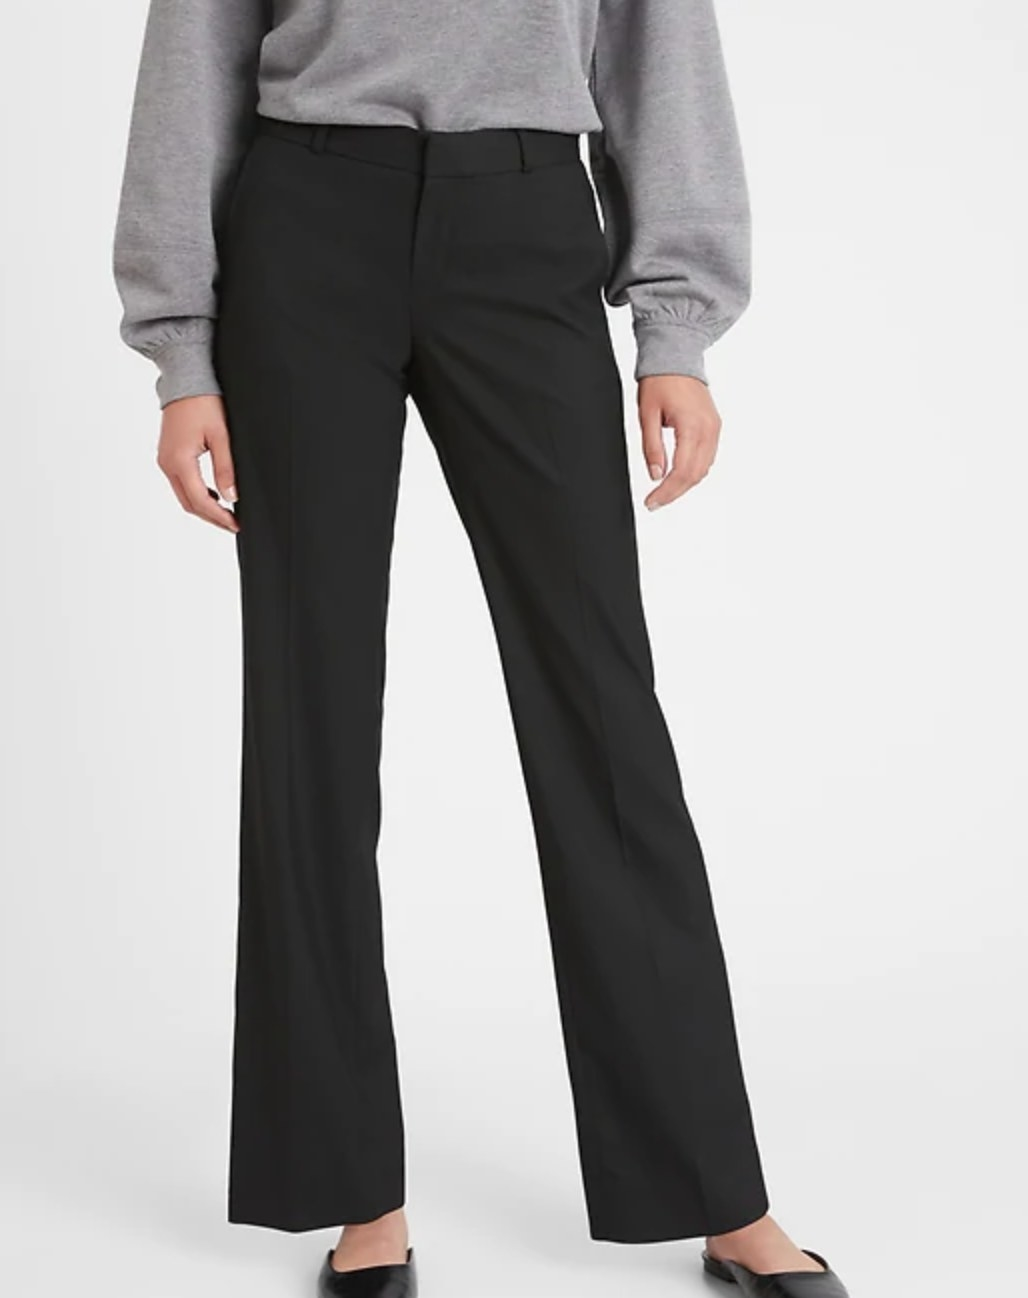 The pair of classic tailored trouser in black